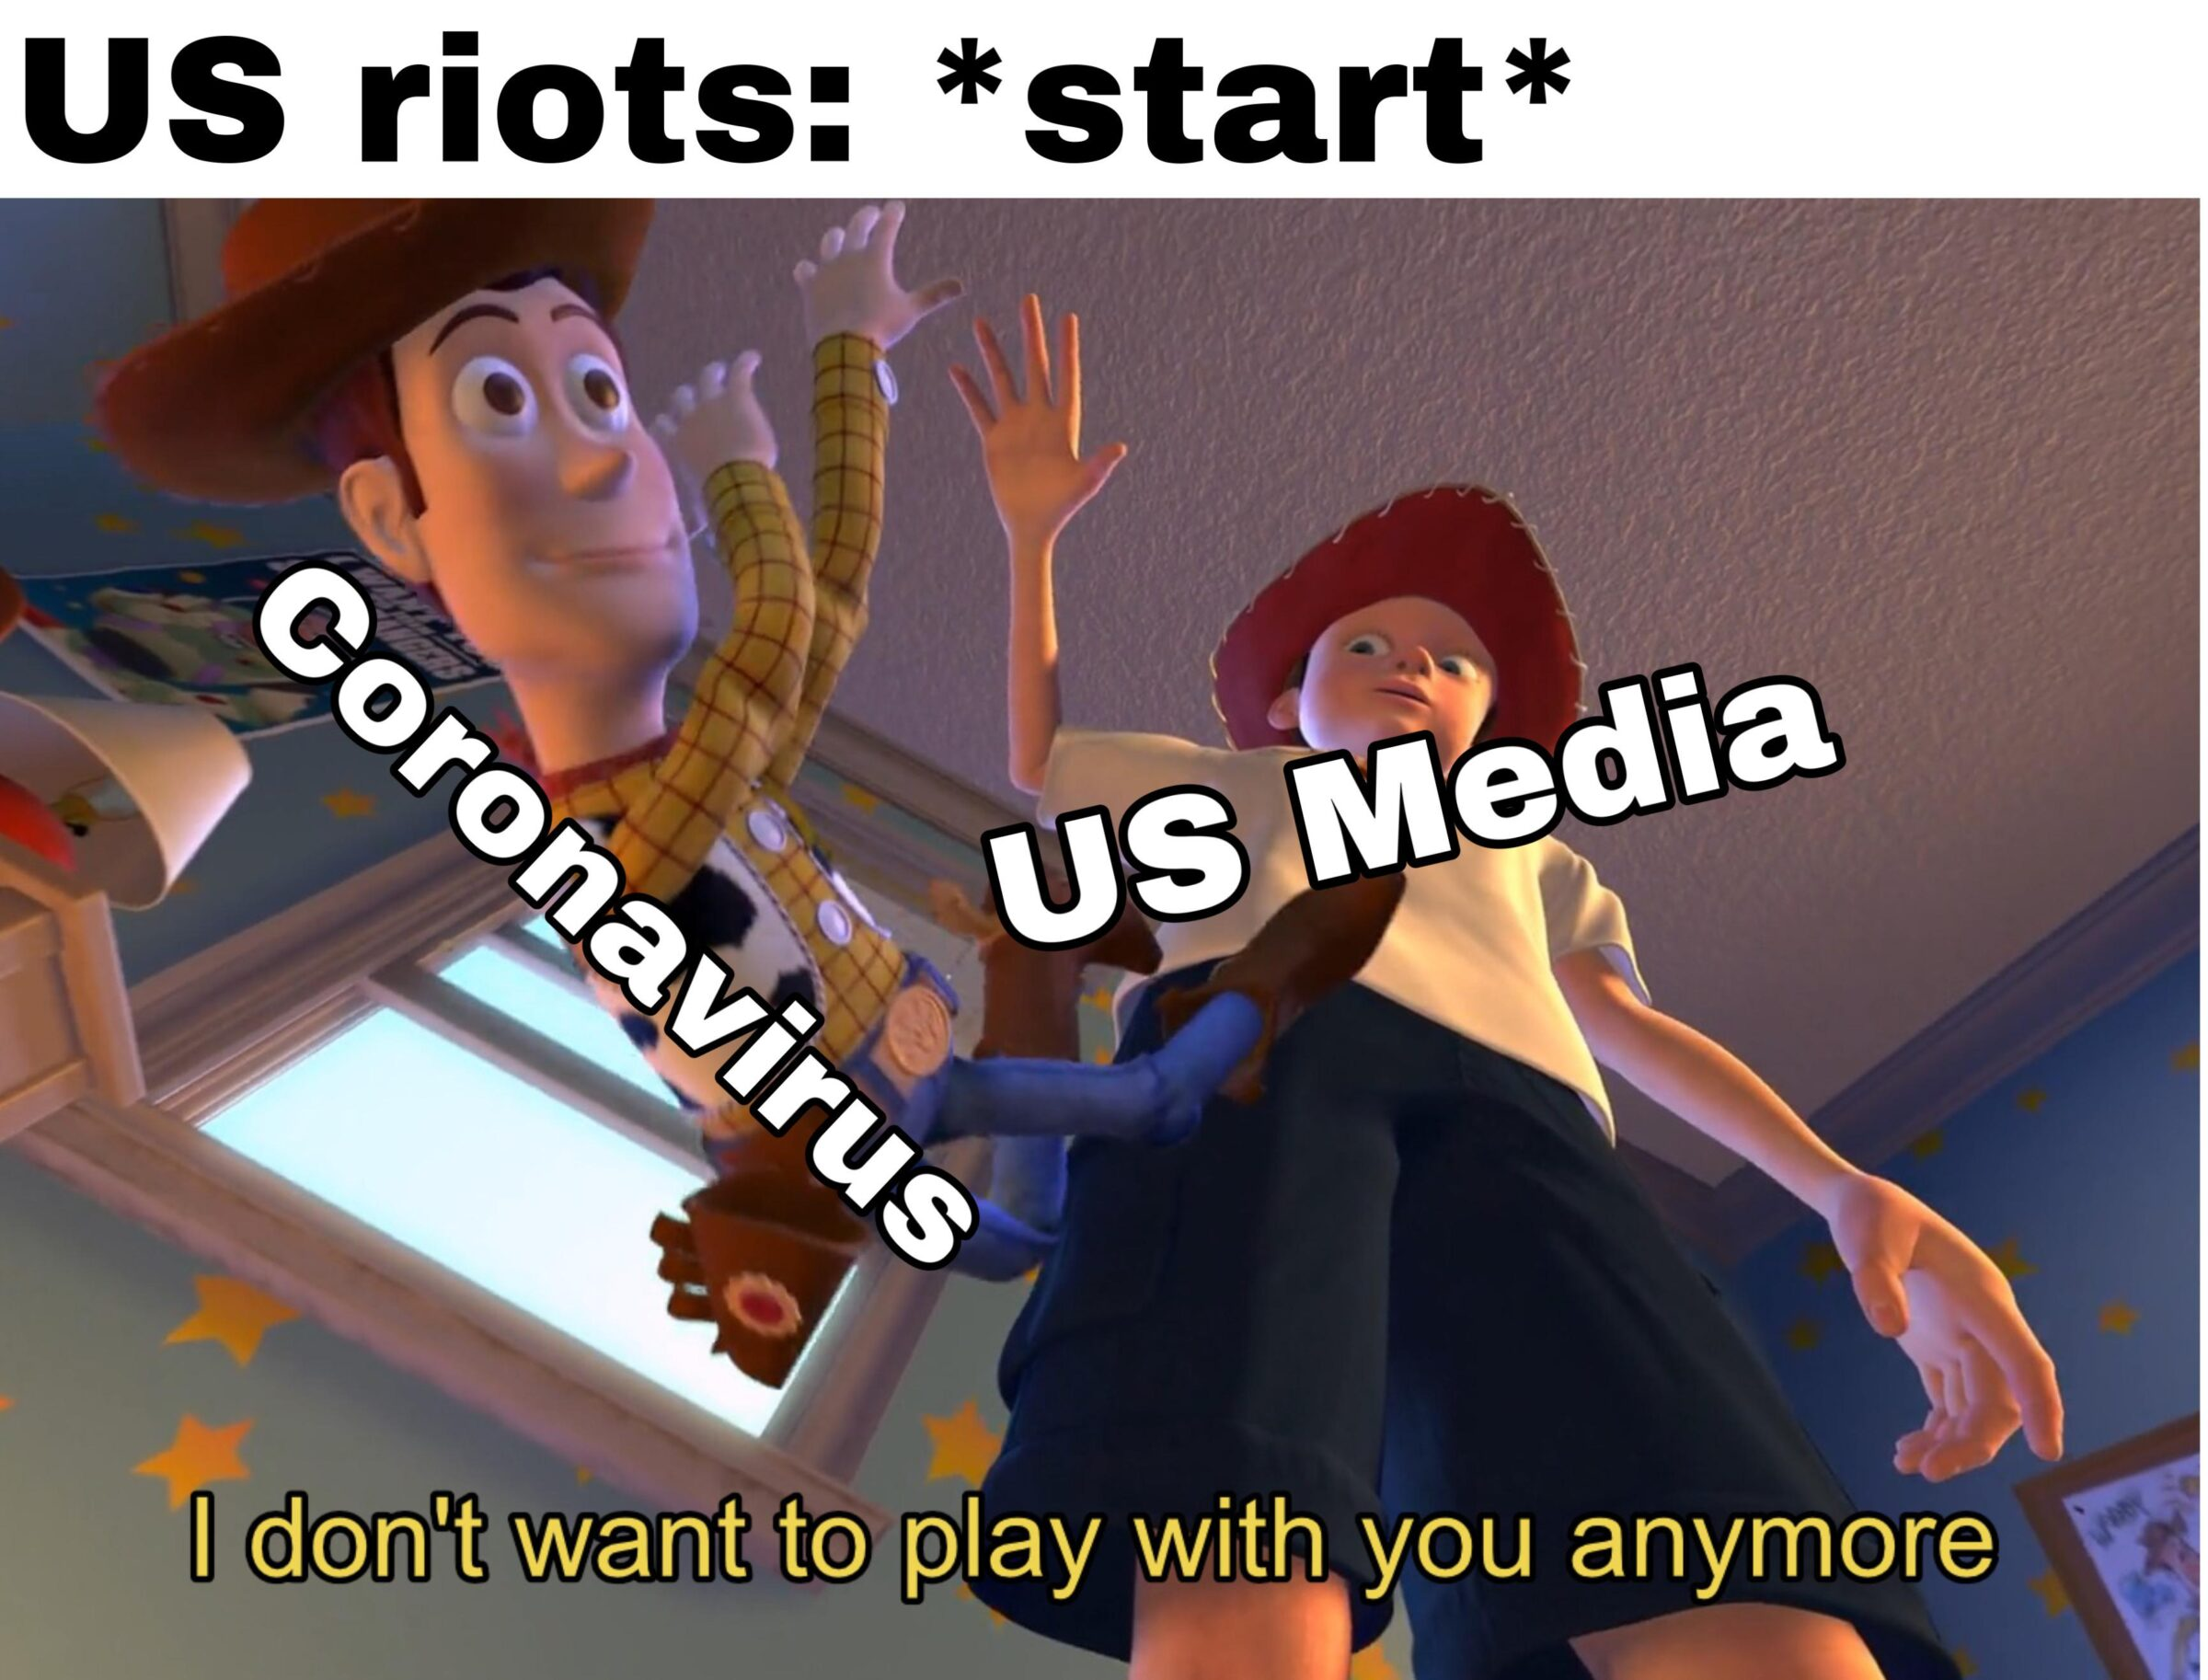 Dank, CNN, Coronavirus, COVID, America, YouTube Dank Memes Dank, CNN, Coronavirus, COVID, America, YouTube text: US riots: *start* (Il don't want to play with you anymore